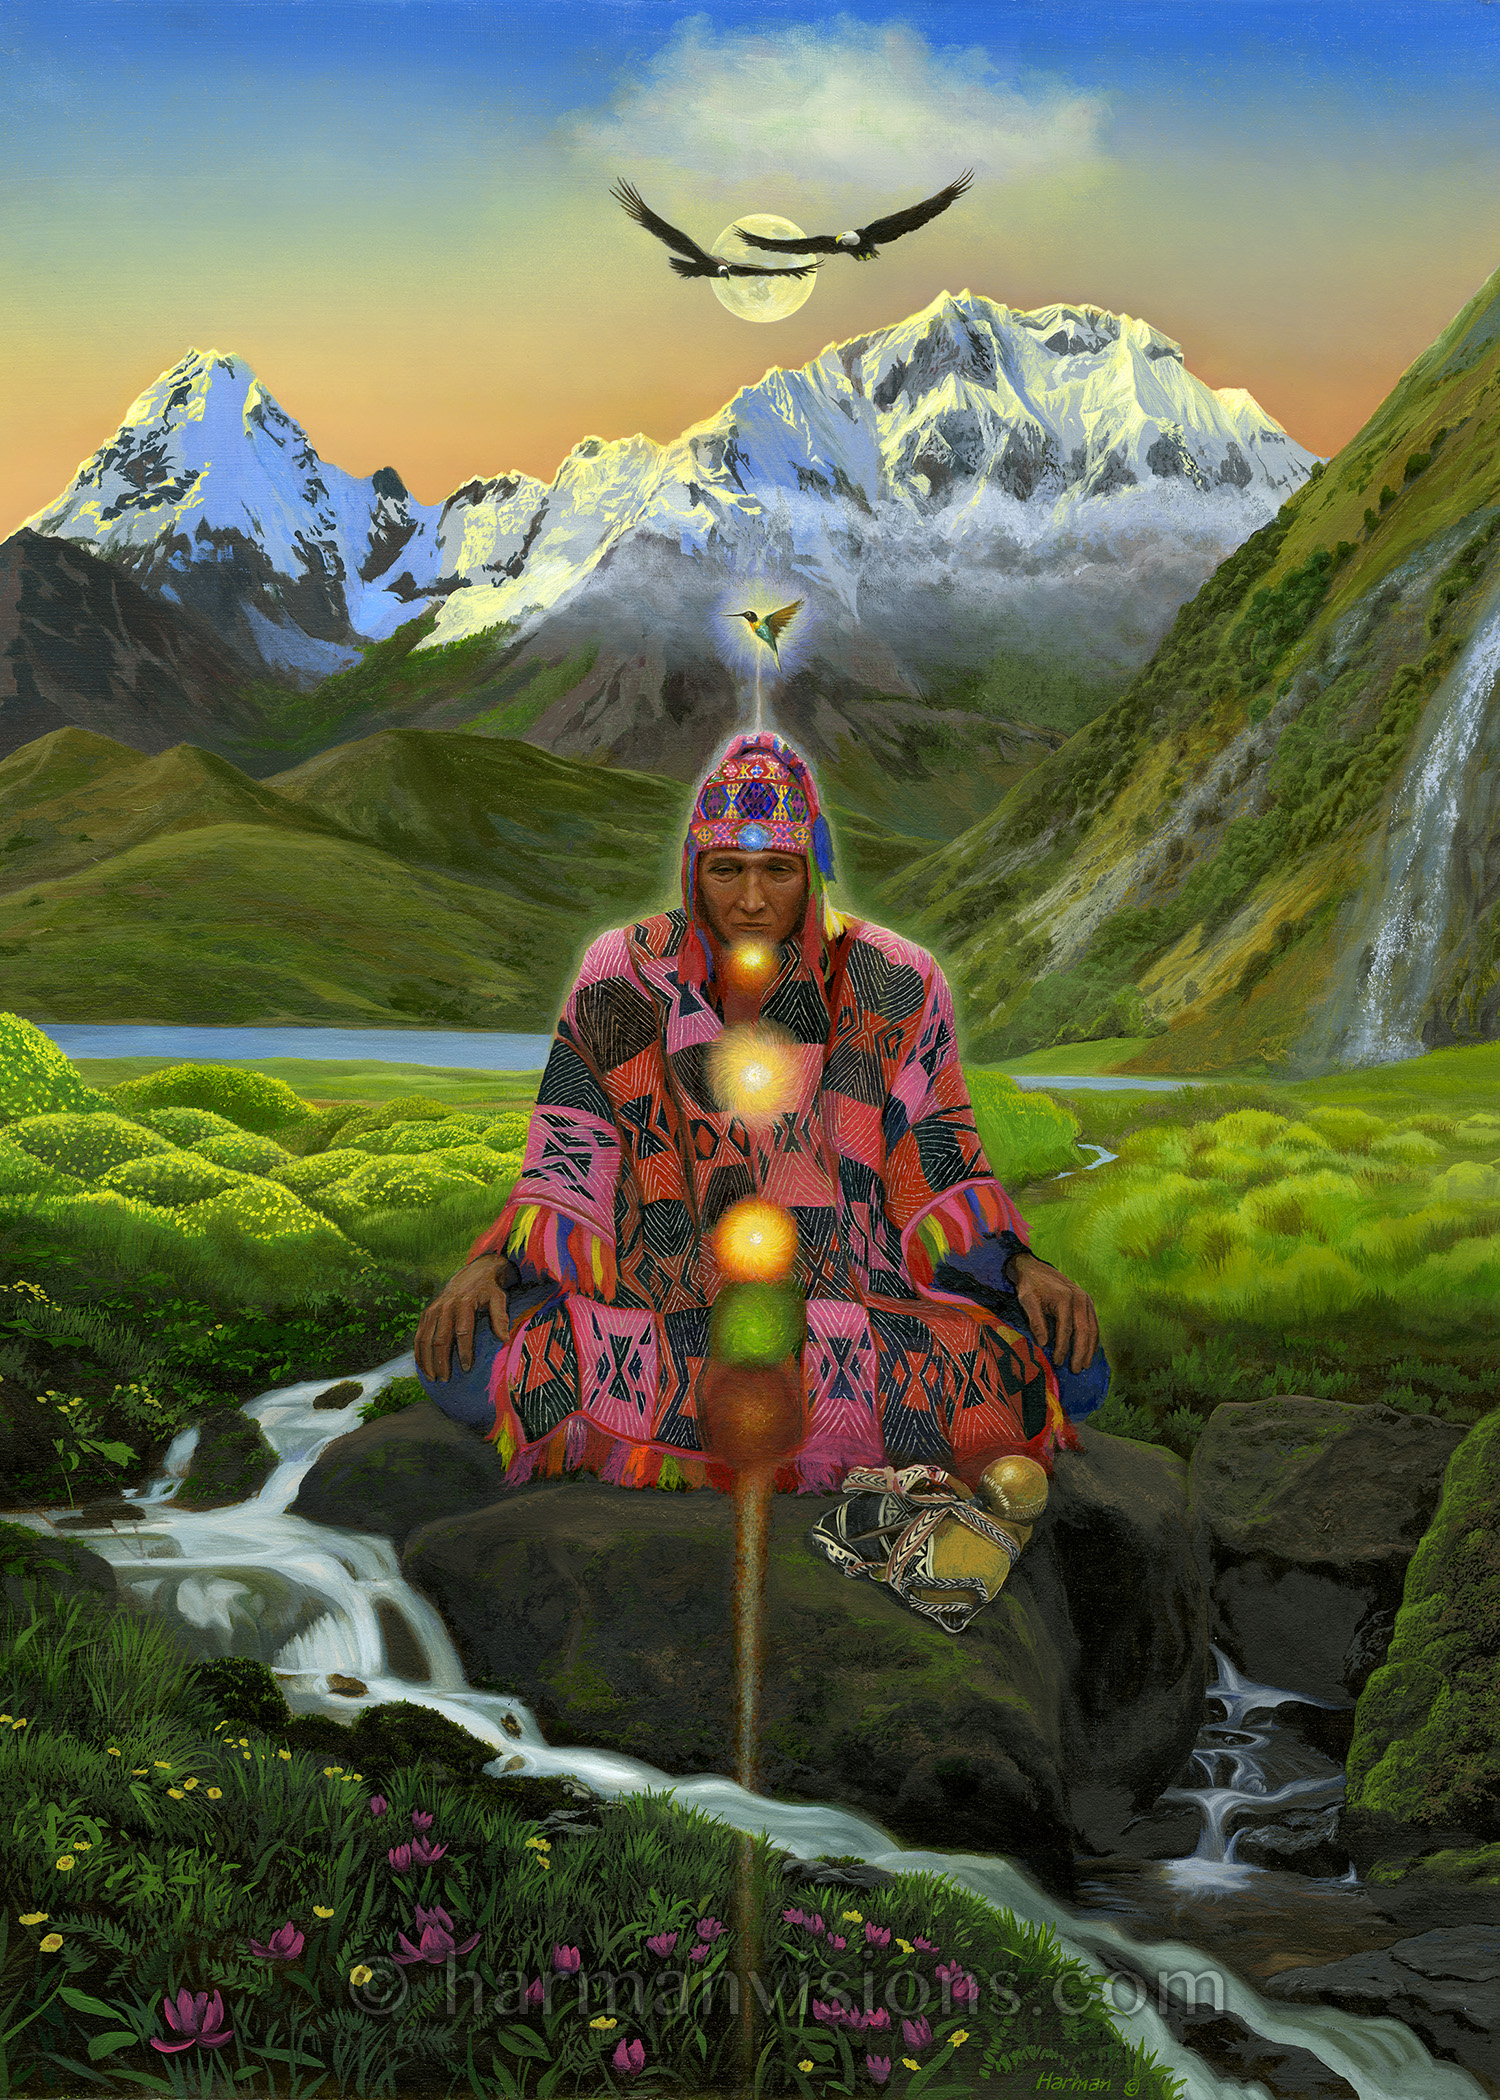 - Inca Prophecy is a commissioned oil painting. Jack is a deeply spiritual man with a soul-inspired mission to share the insights derived from his Peruvian shaman-led experiences. His meditation practice is based on the chakras but blended with Inca wisdom teachings. He got in touch with me after seeing some of my art on display, but was wary because of a previous experience commissioning art from a painter. Once we got together, conversation flowed and we found a simple but profound common ground. The final result came about after several revisions, and he was very happy.